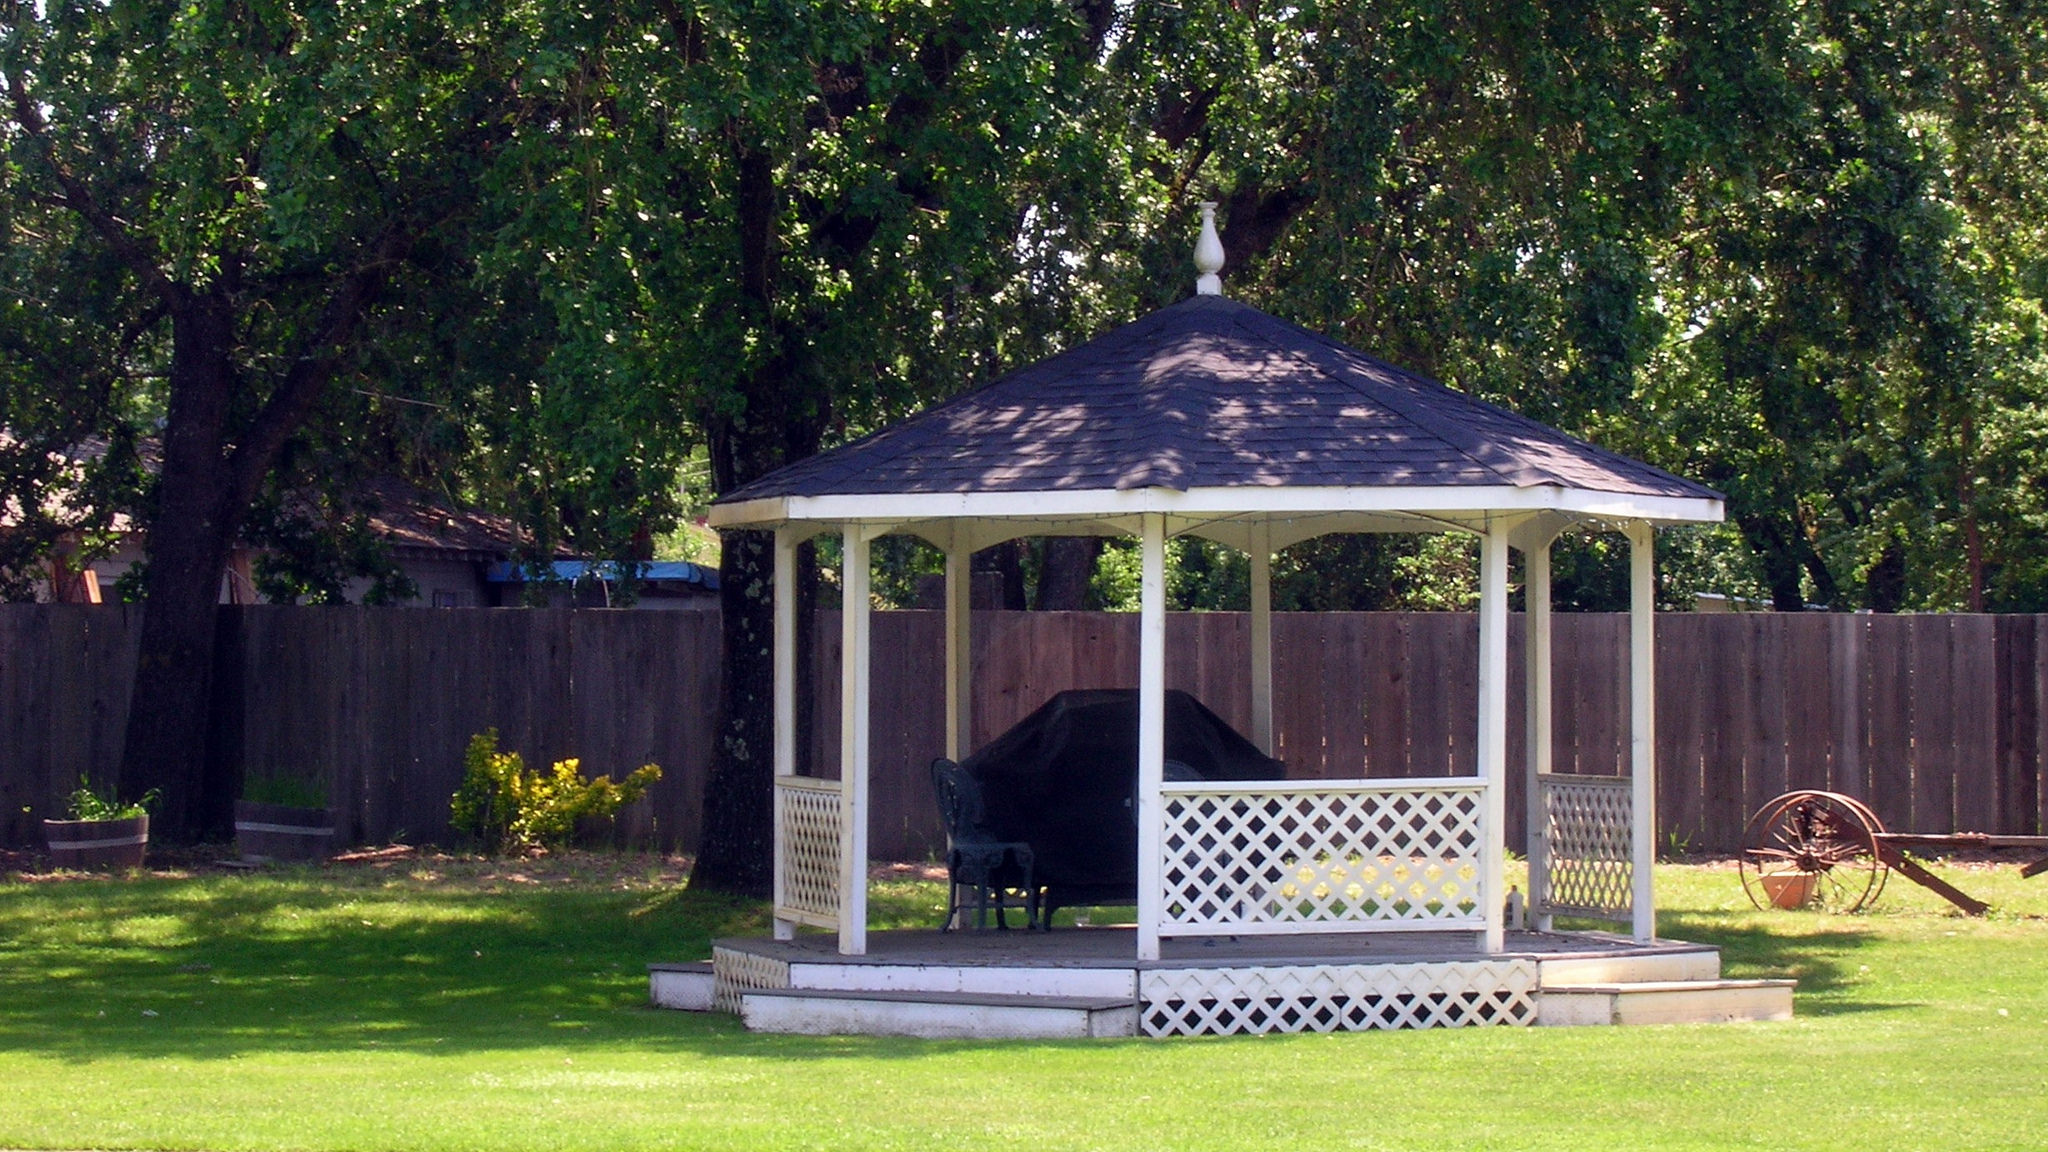 Gazebo and conservatory: blurring inside and outside